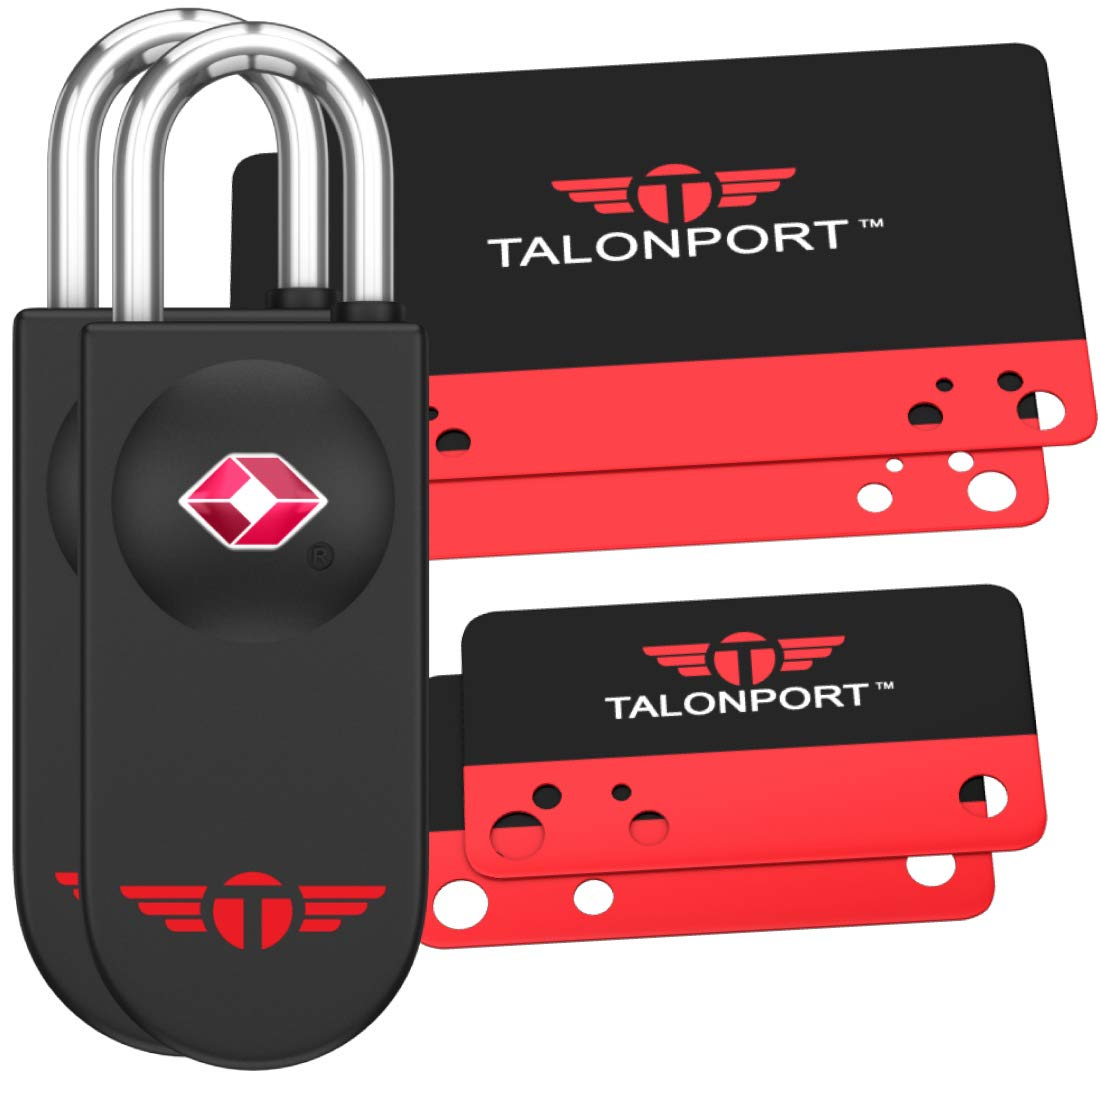 Keyless TSA Approved Luggage Lock with Lifetime Card Keys & No Combo to Forget (2 Pack) by Talonport